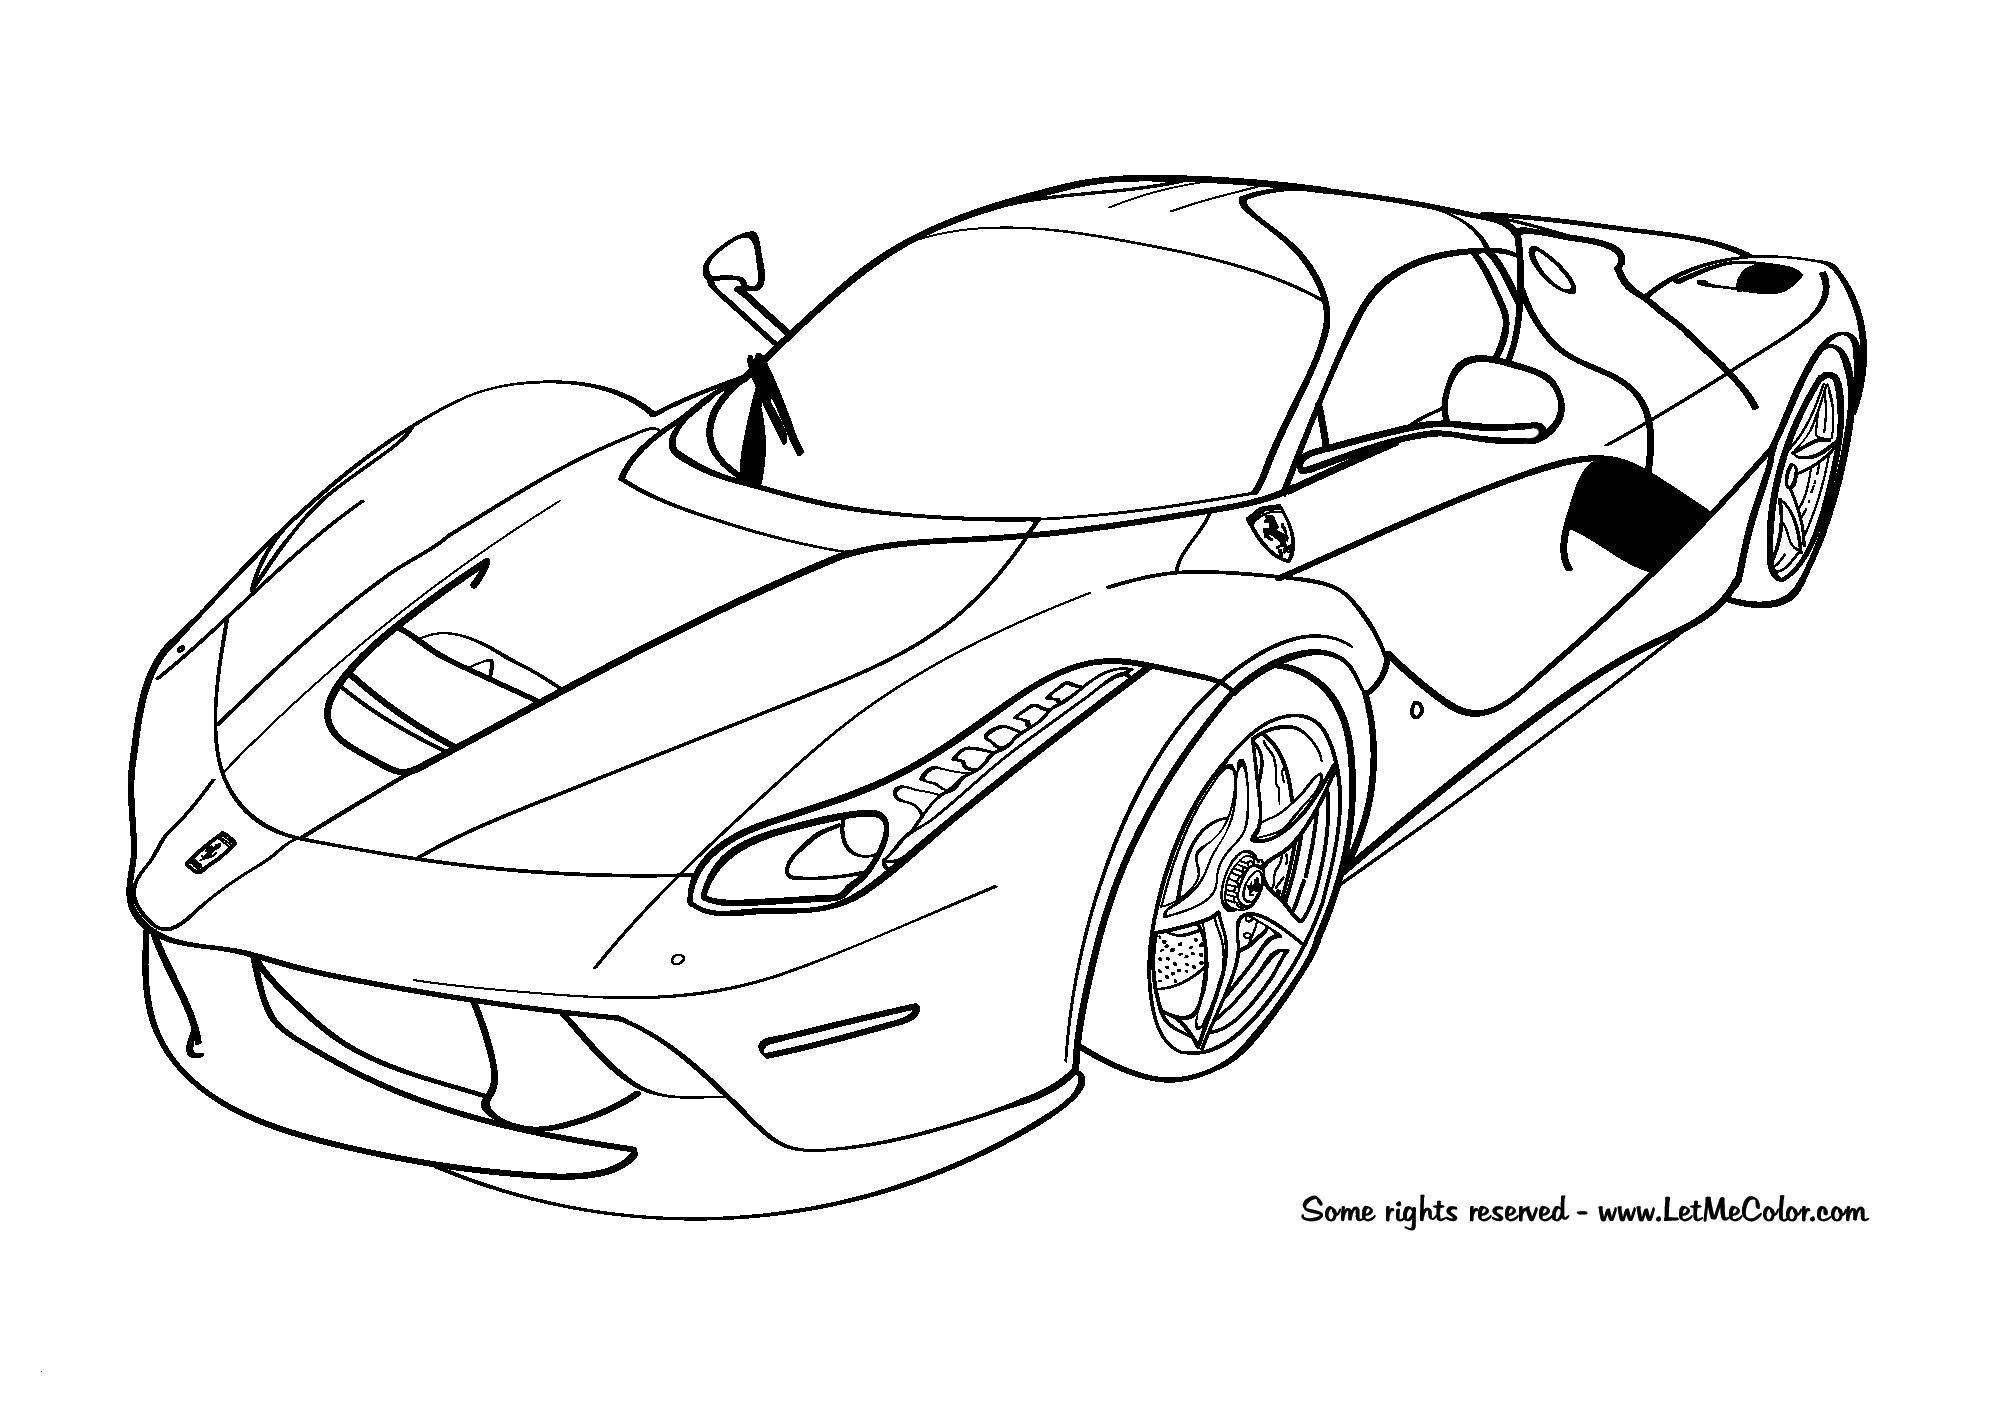 Sports Car Coloring Pages Best Of Malvorlagen Cars 2 Zum Ausdrucken Malvorlage Cars Lovely Cars Coloring Pages Sports Coloring Pages Race Car Coloring Pages